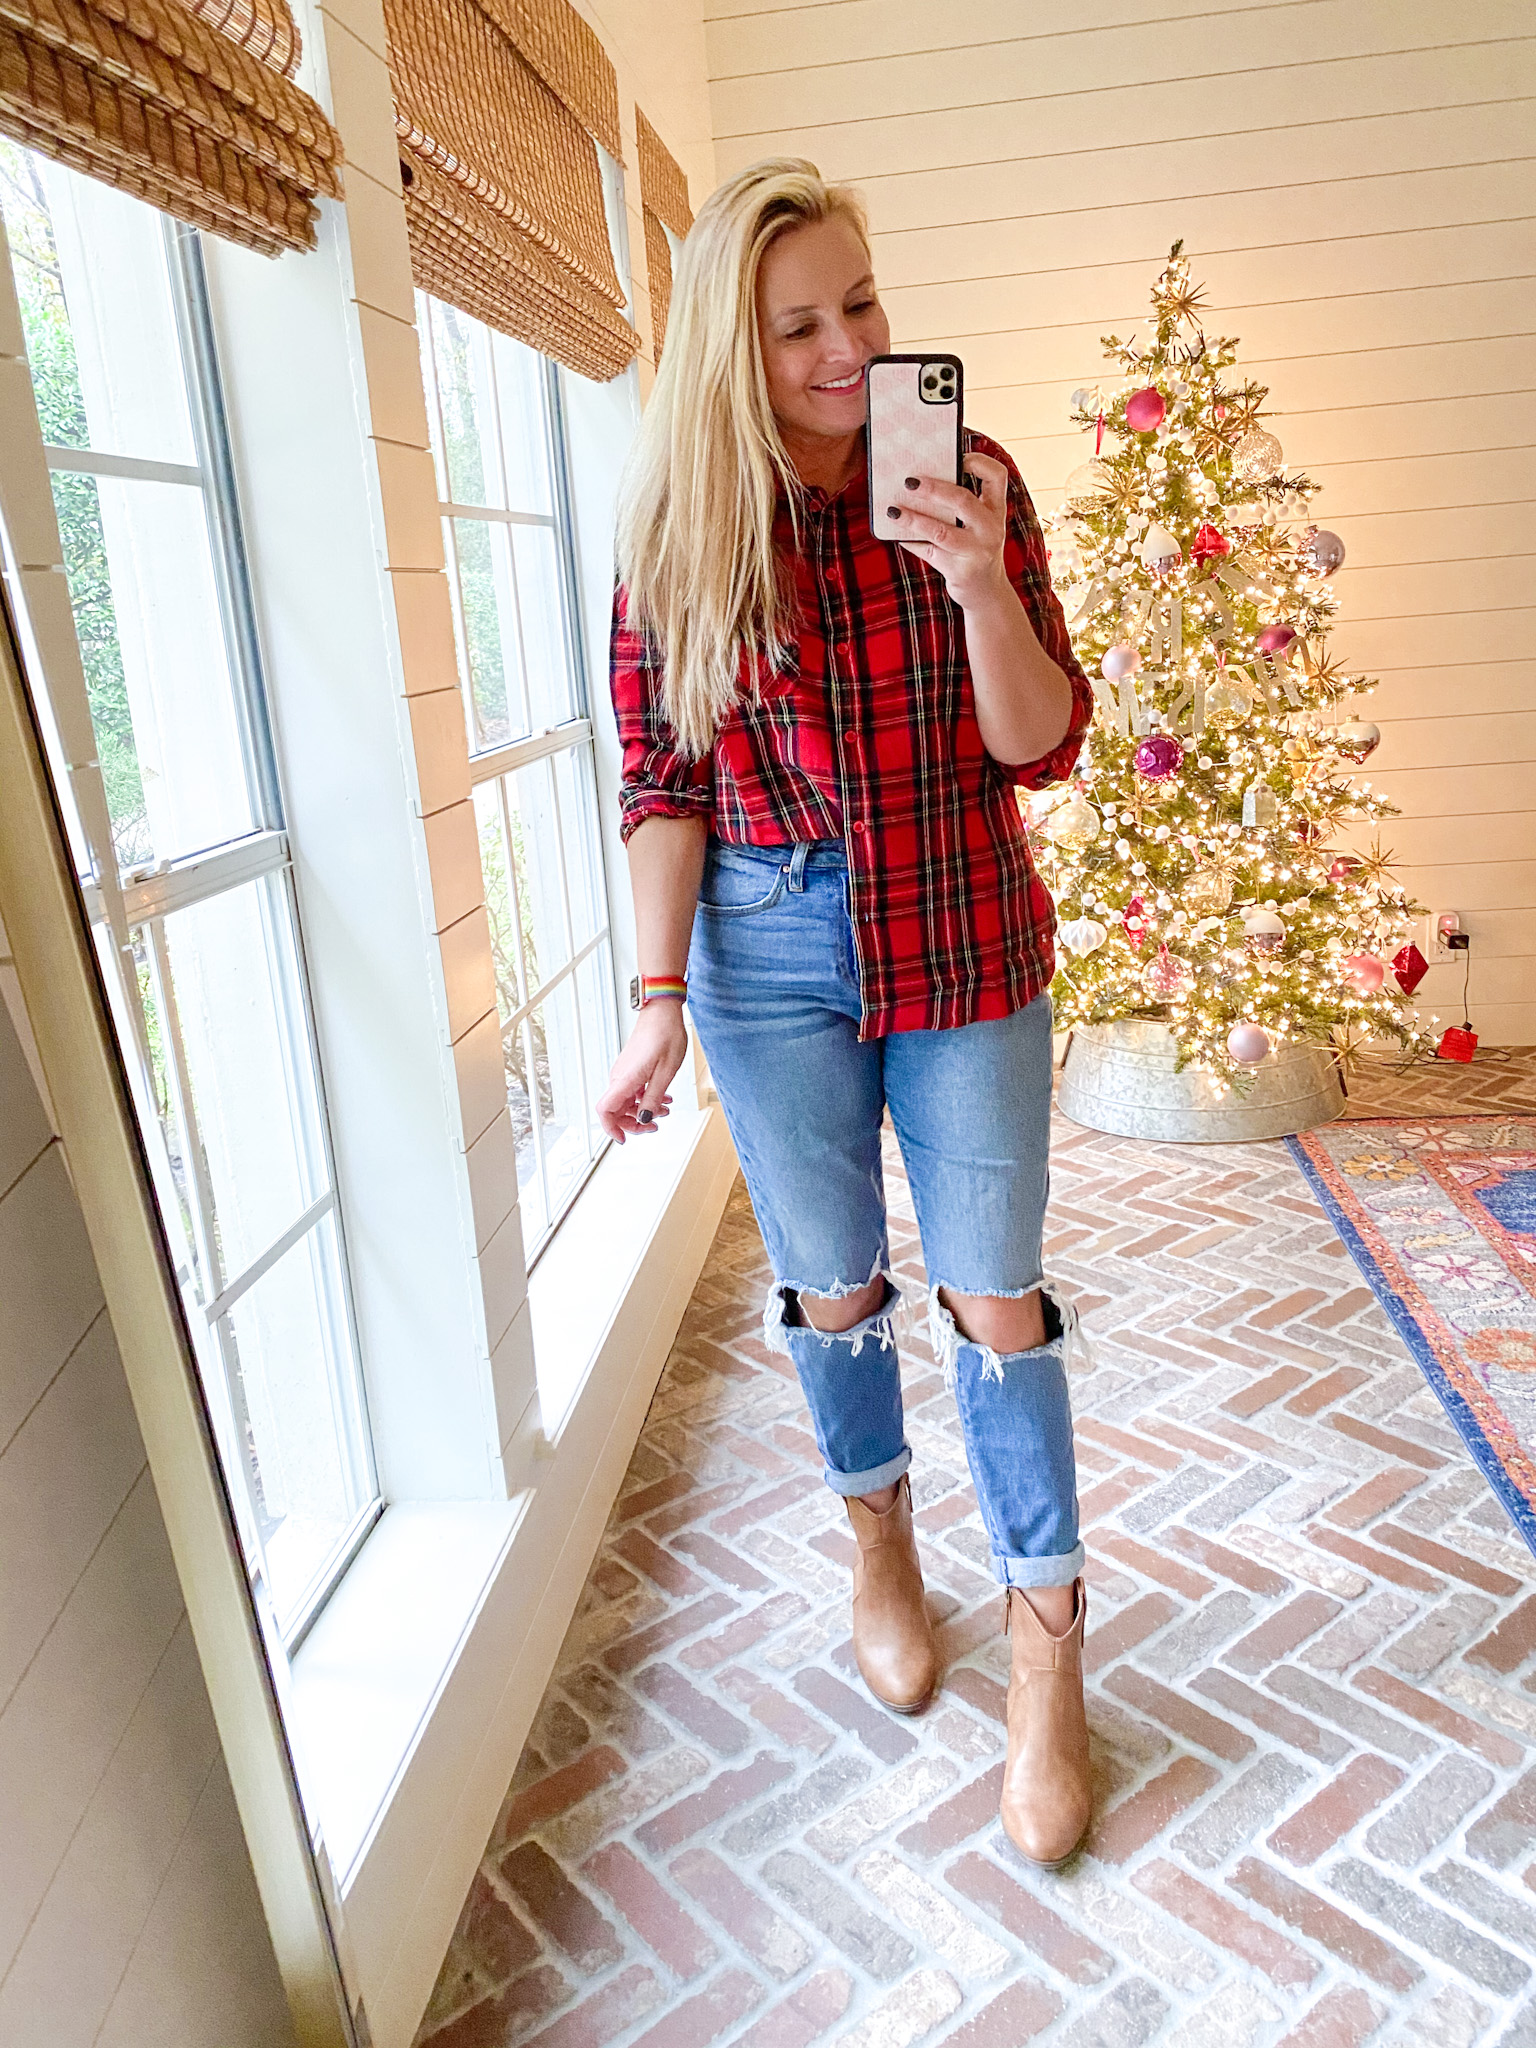 December Outfits by popular Houston fashion blog, Fancy Ashley: image of a woman standing in front of a Christmas tree decorated with pink, white and silver ornaments and wearing a red and green plaid button up top, distressed denim, and tan ankle boots.